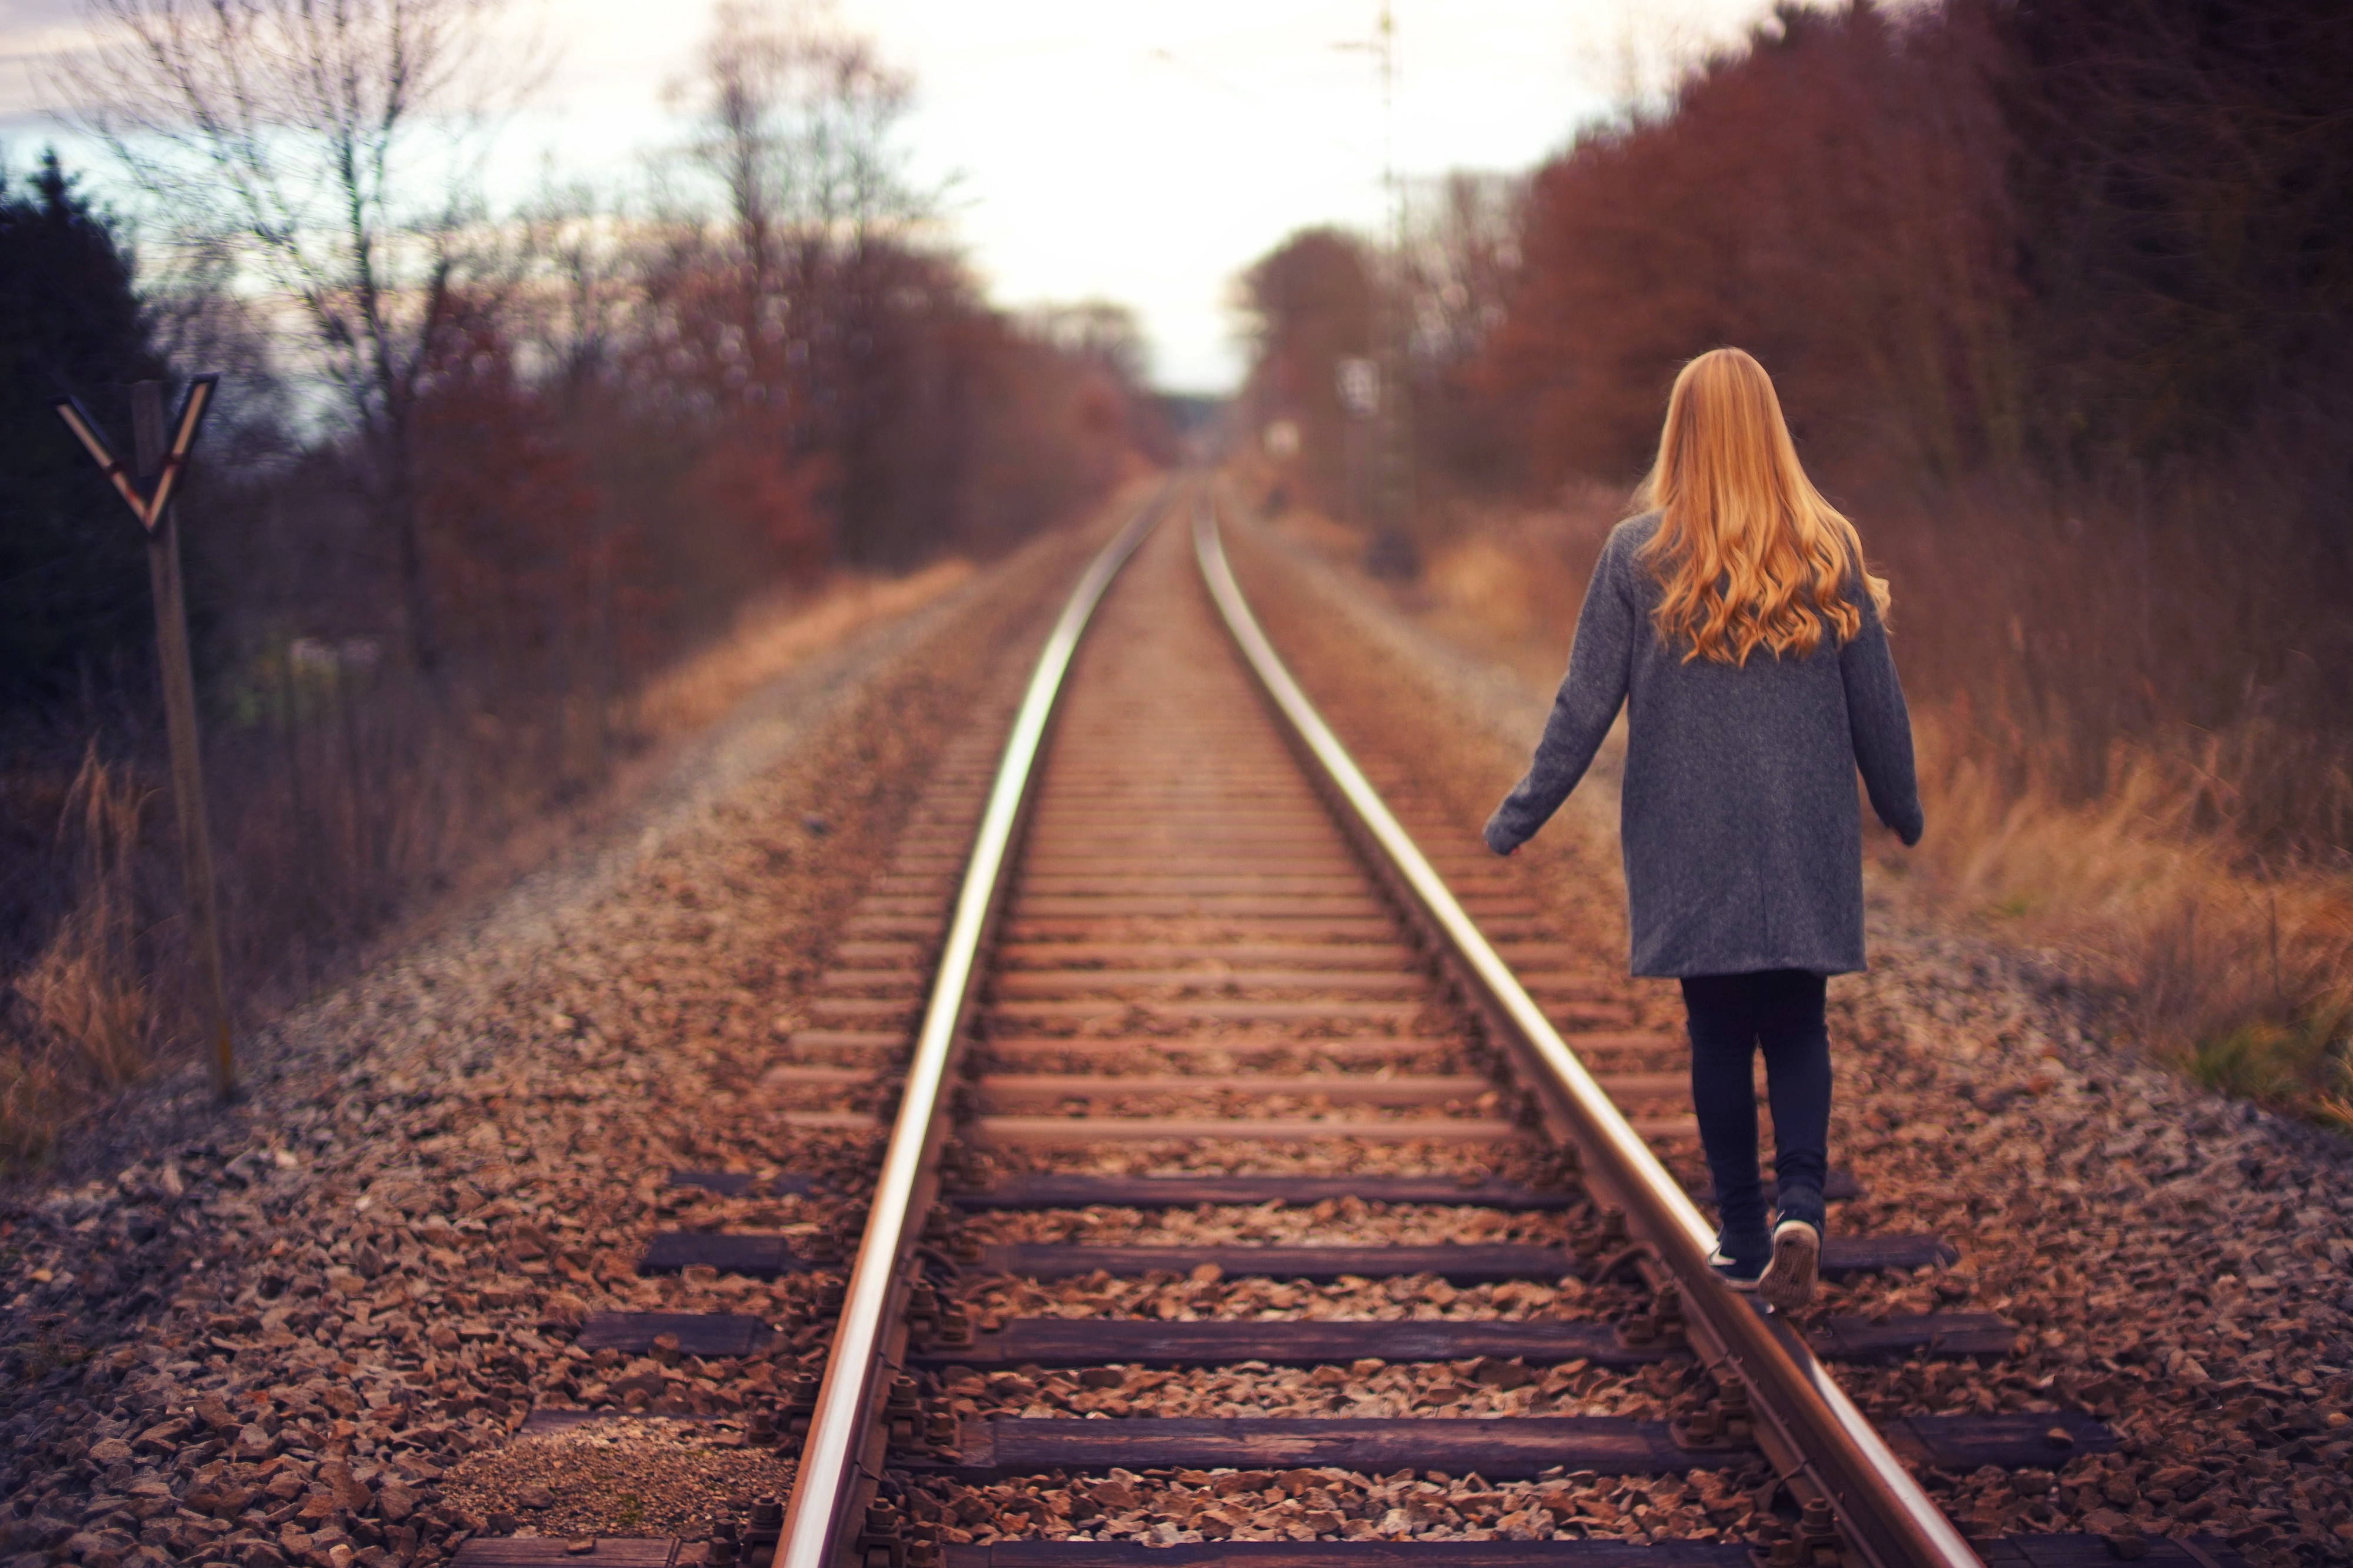 A woman with long red and a grey coat, balances on railroad tracks. Photo by Johannes Plenio on Unsplash